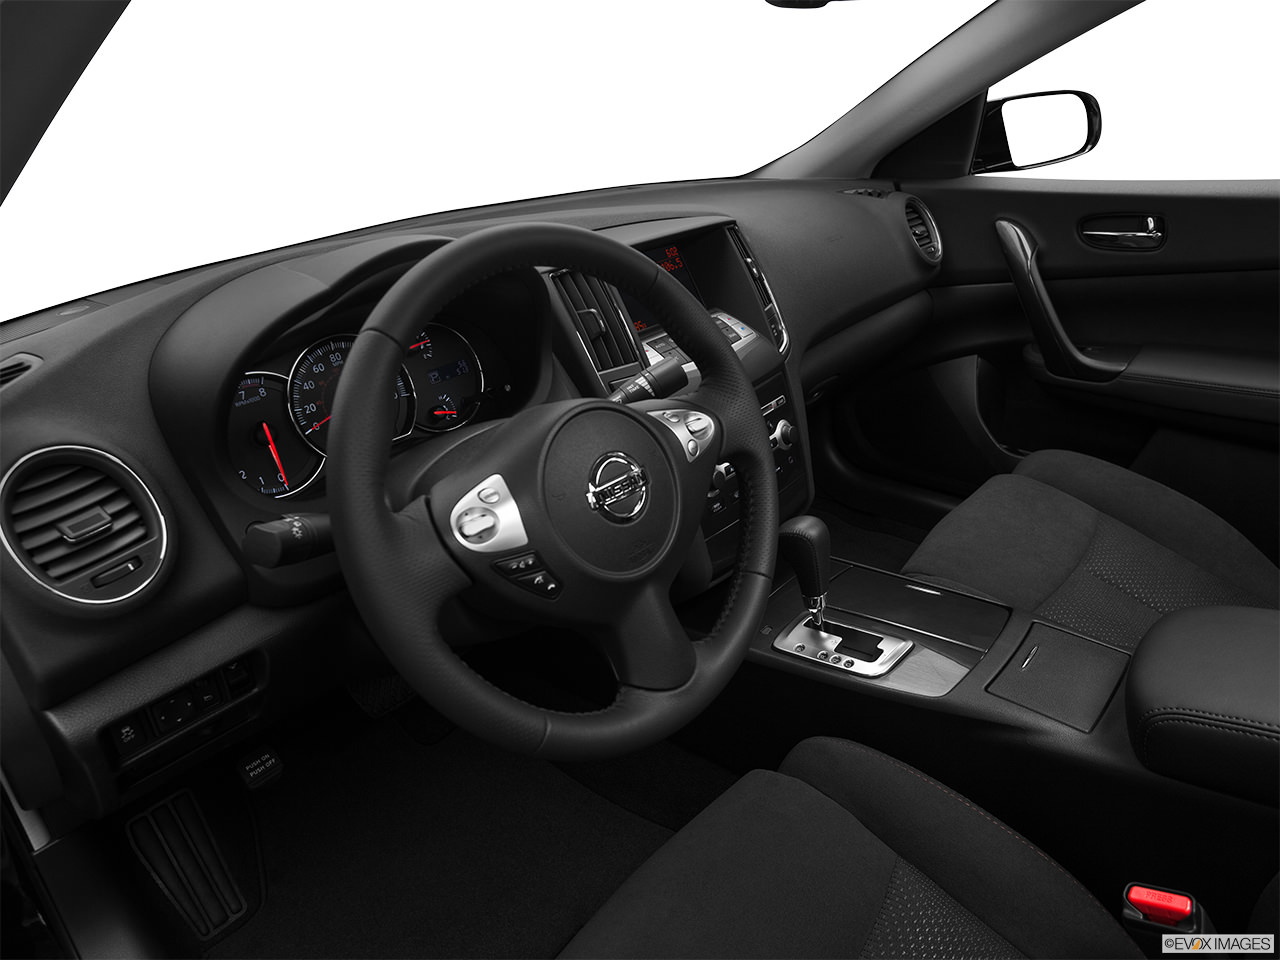 nissan maxima black interior cheap nice nissan maxima on interior decor car ideas with nissan. Black Bedroom Furniture Sets. Home Design Ideas